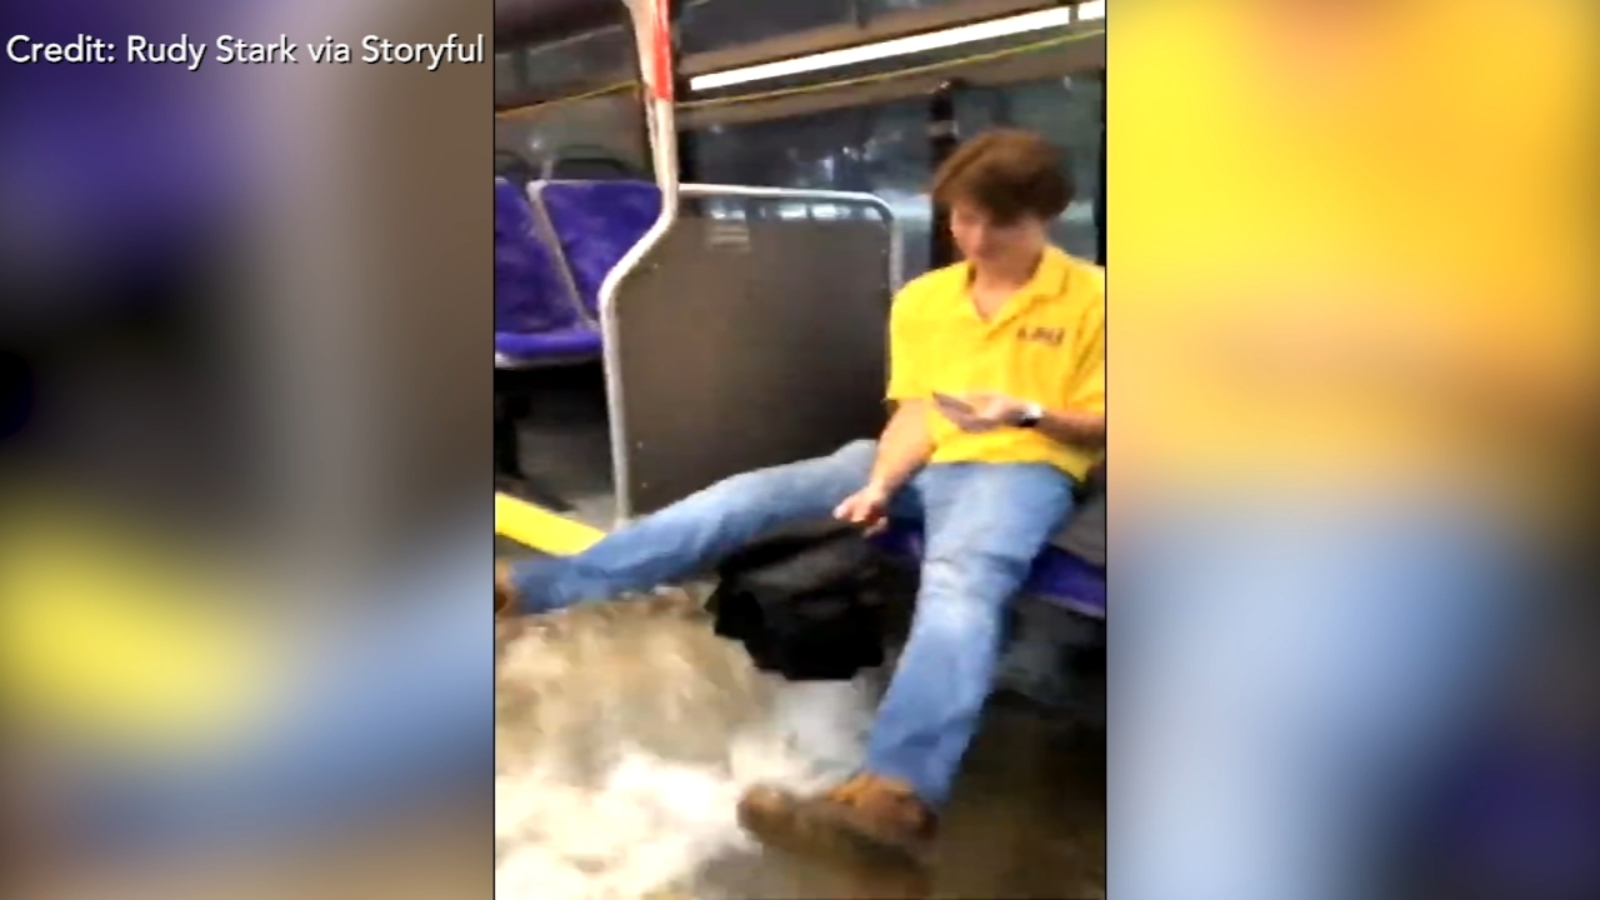 Flood waters sweep through bus as college students ride to class